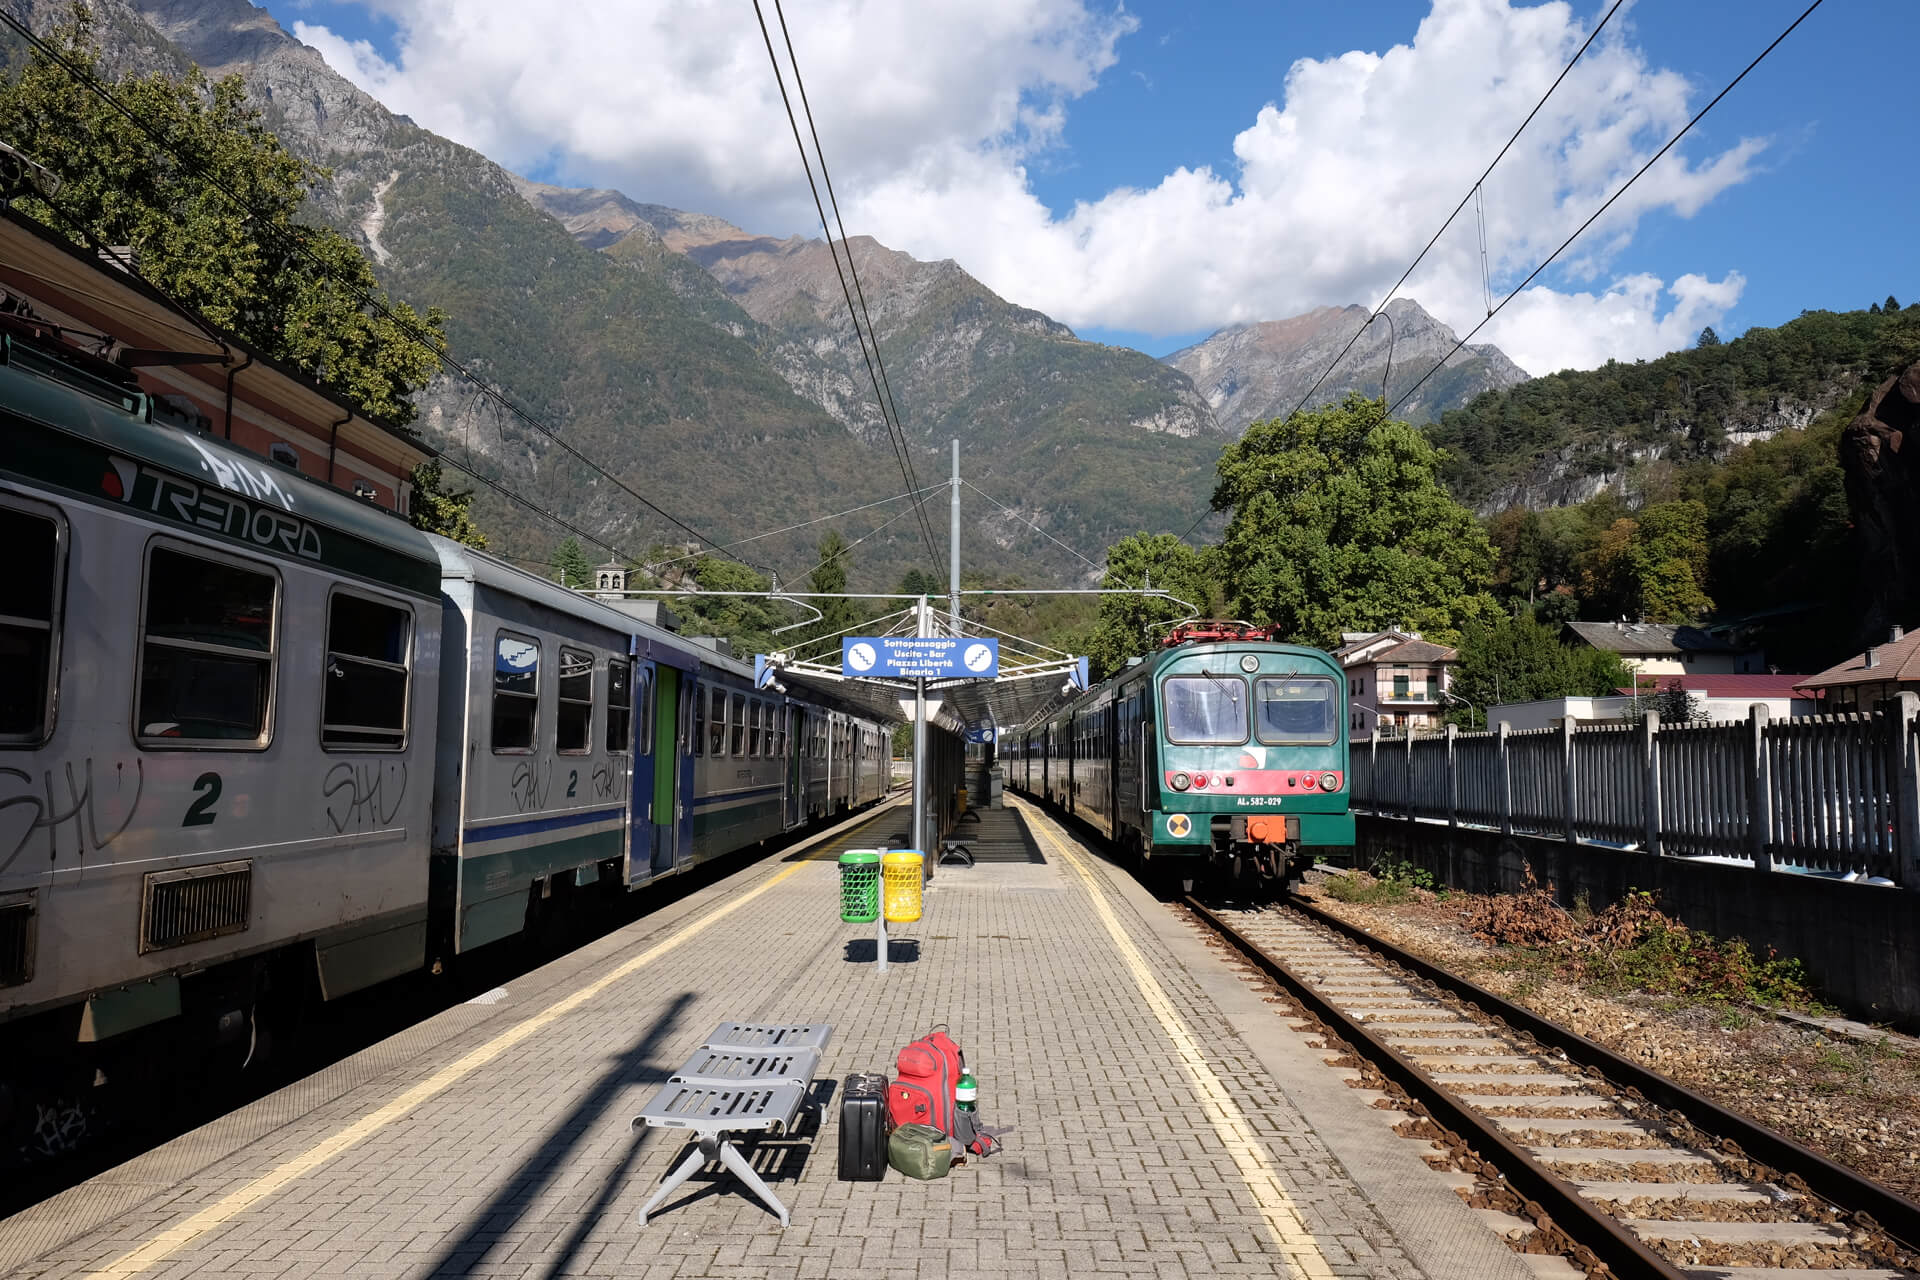 Start of my glass journey travel from Chiavenna to Murano